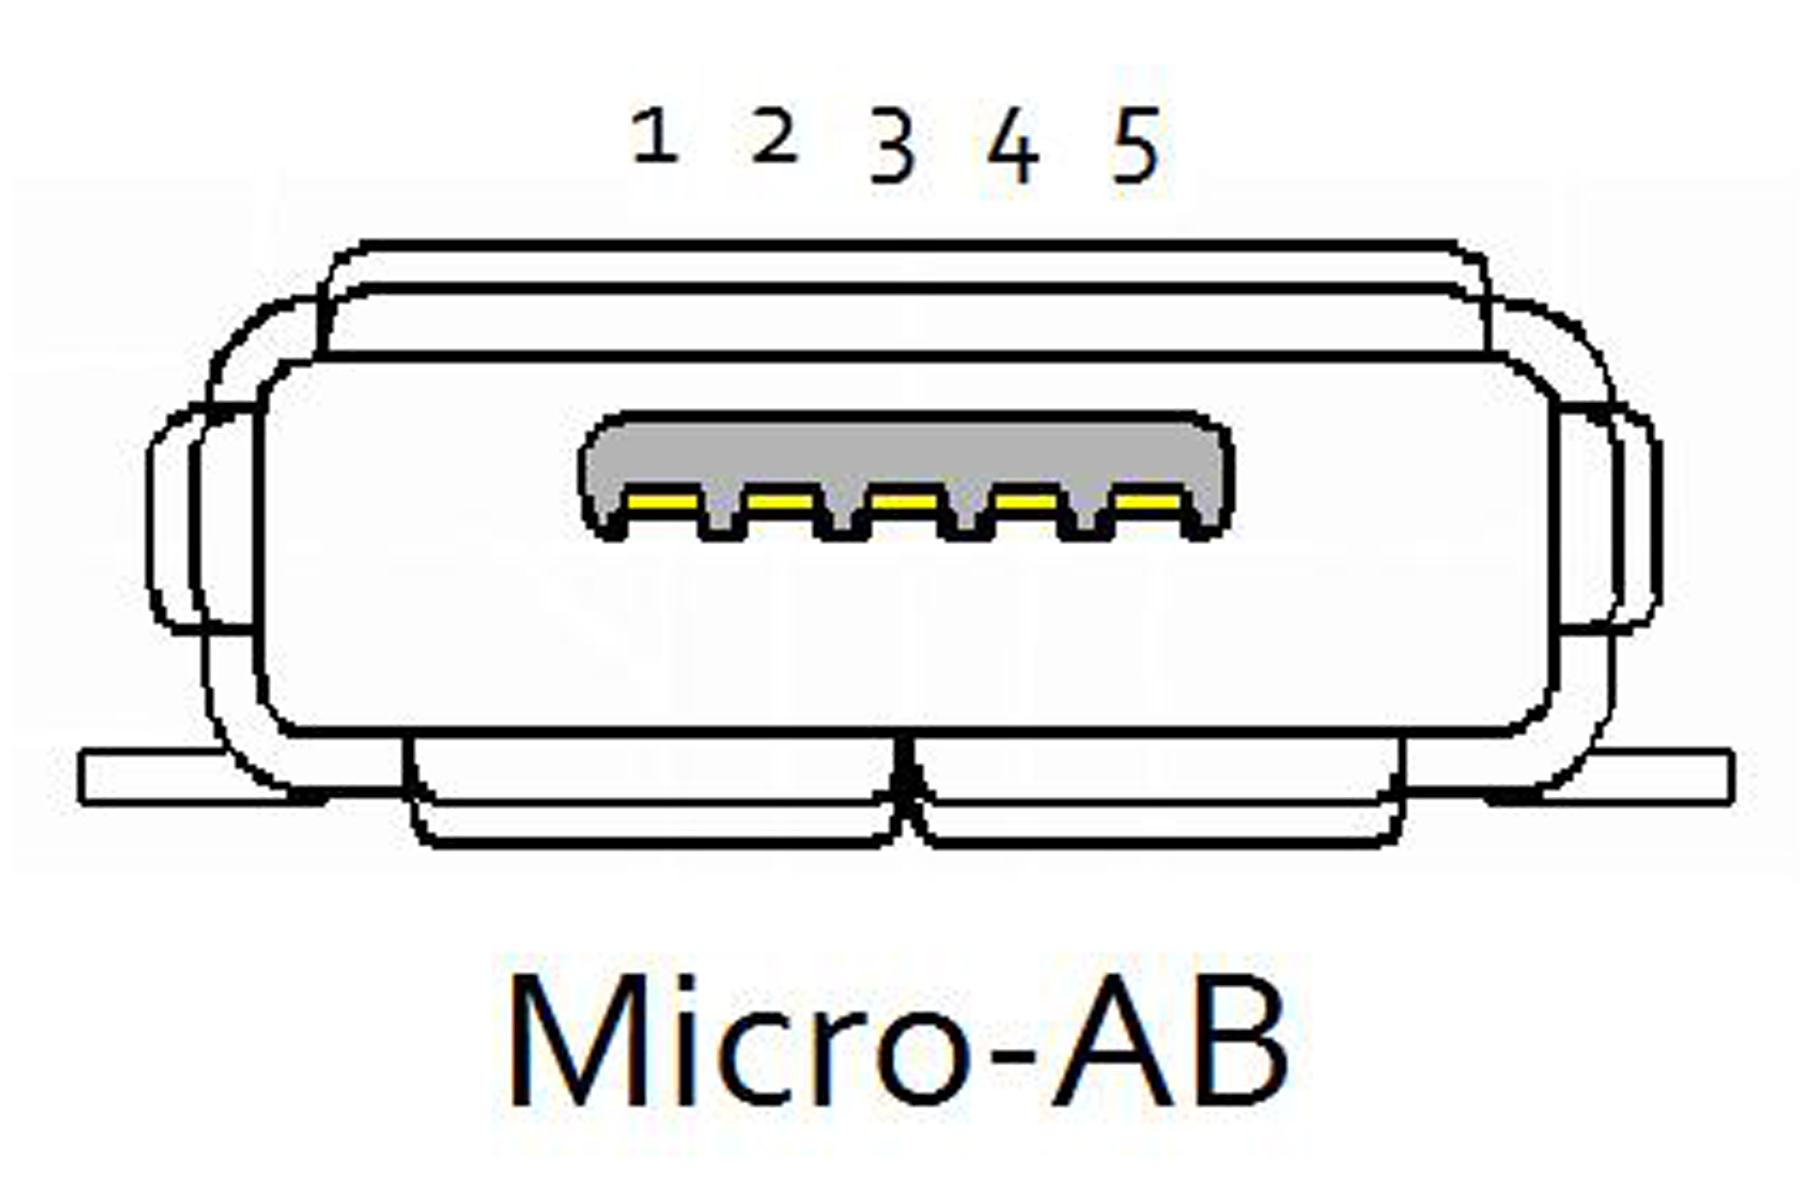 usb wiring diagram wiki etre couche 5 lettres file micro ab receptacle jpg